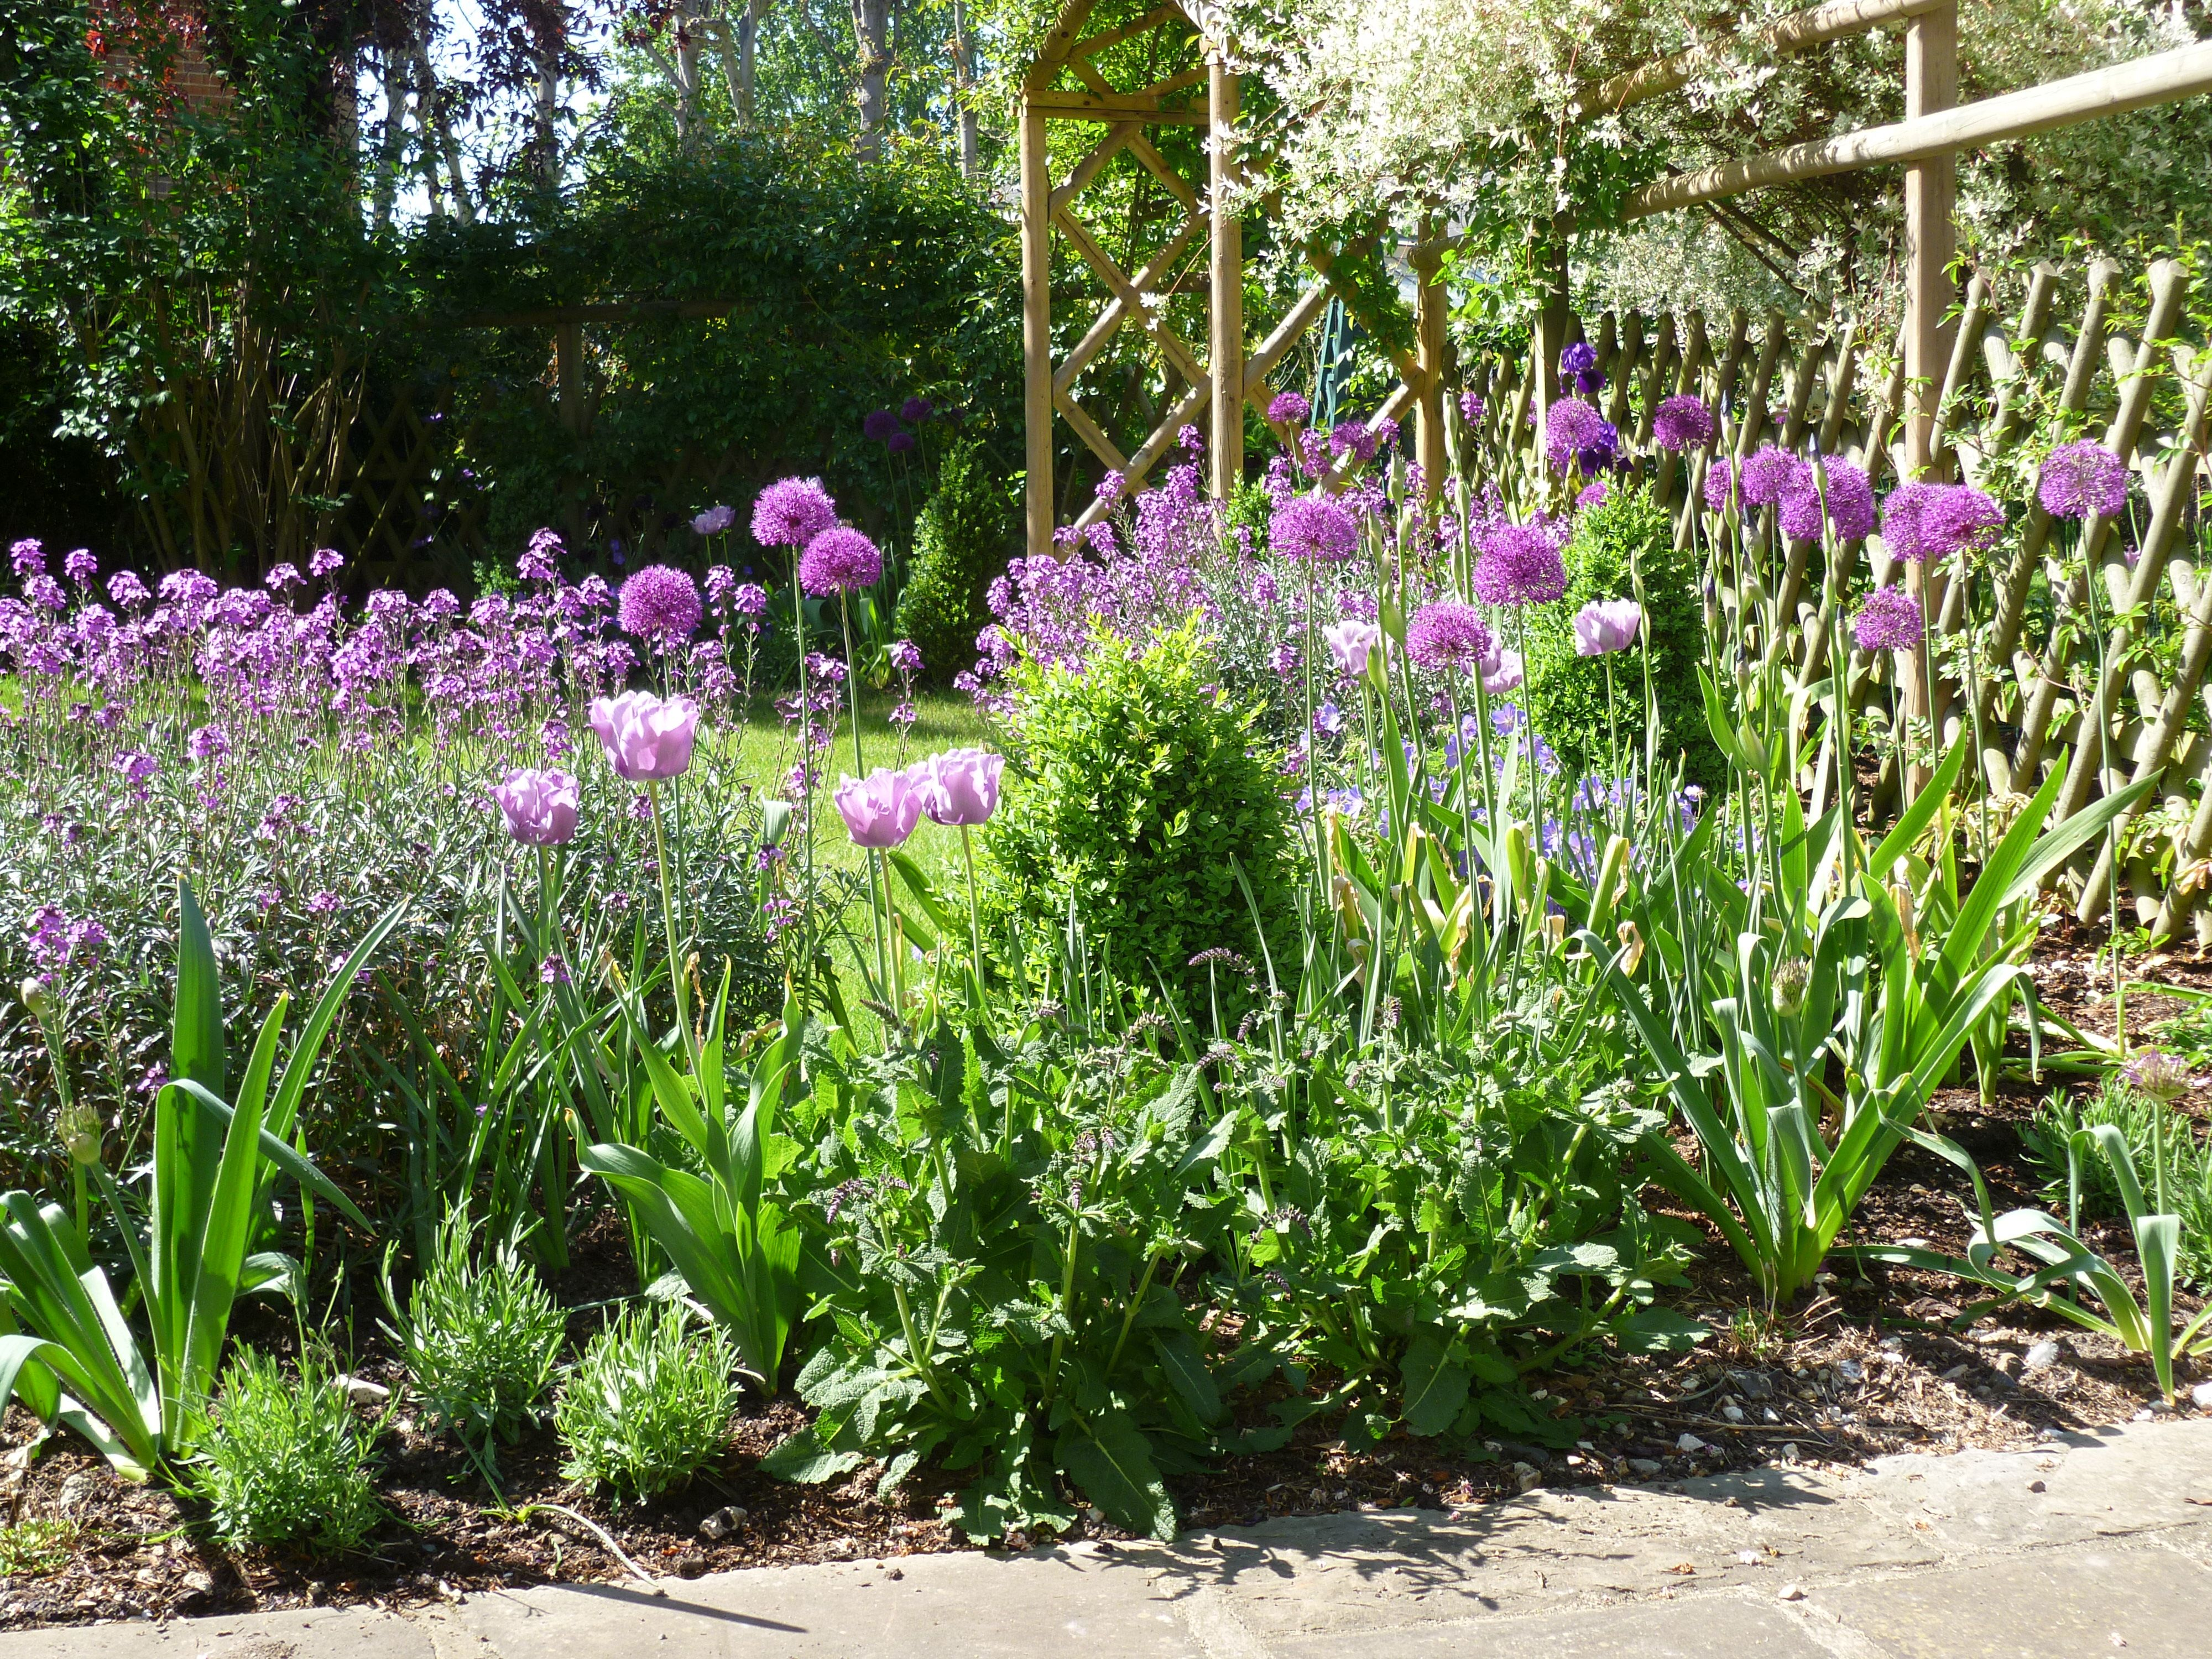 In spring the garden is full of tulips and Alliums